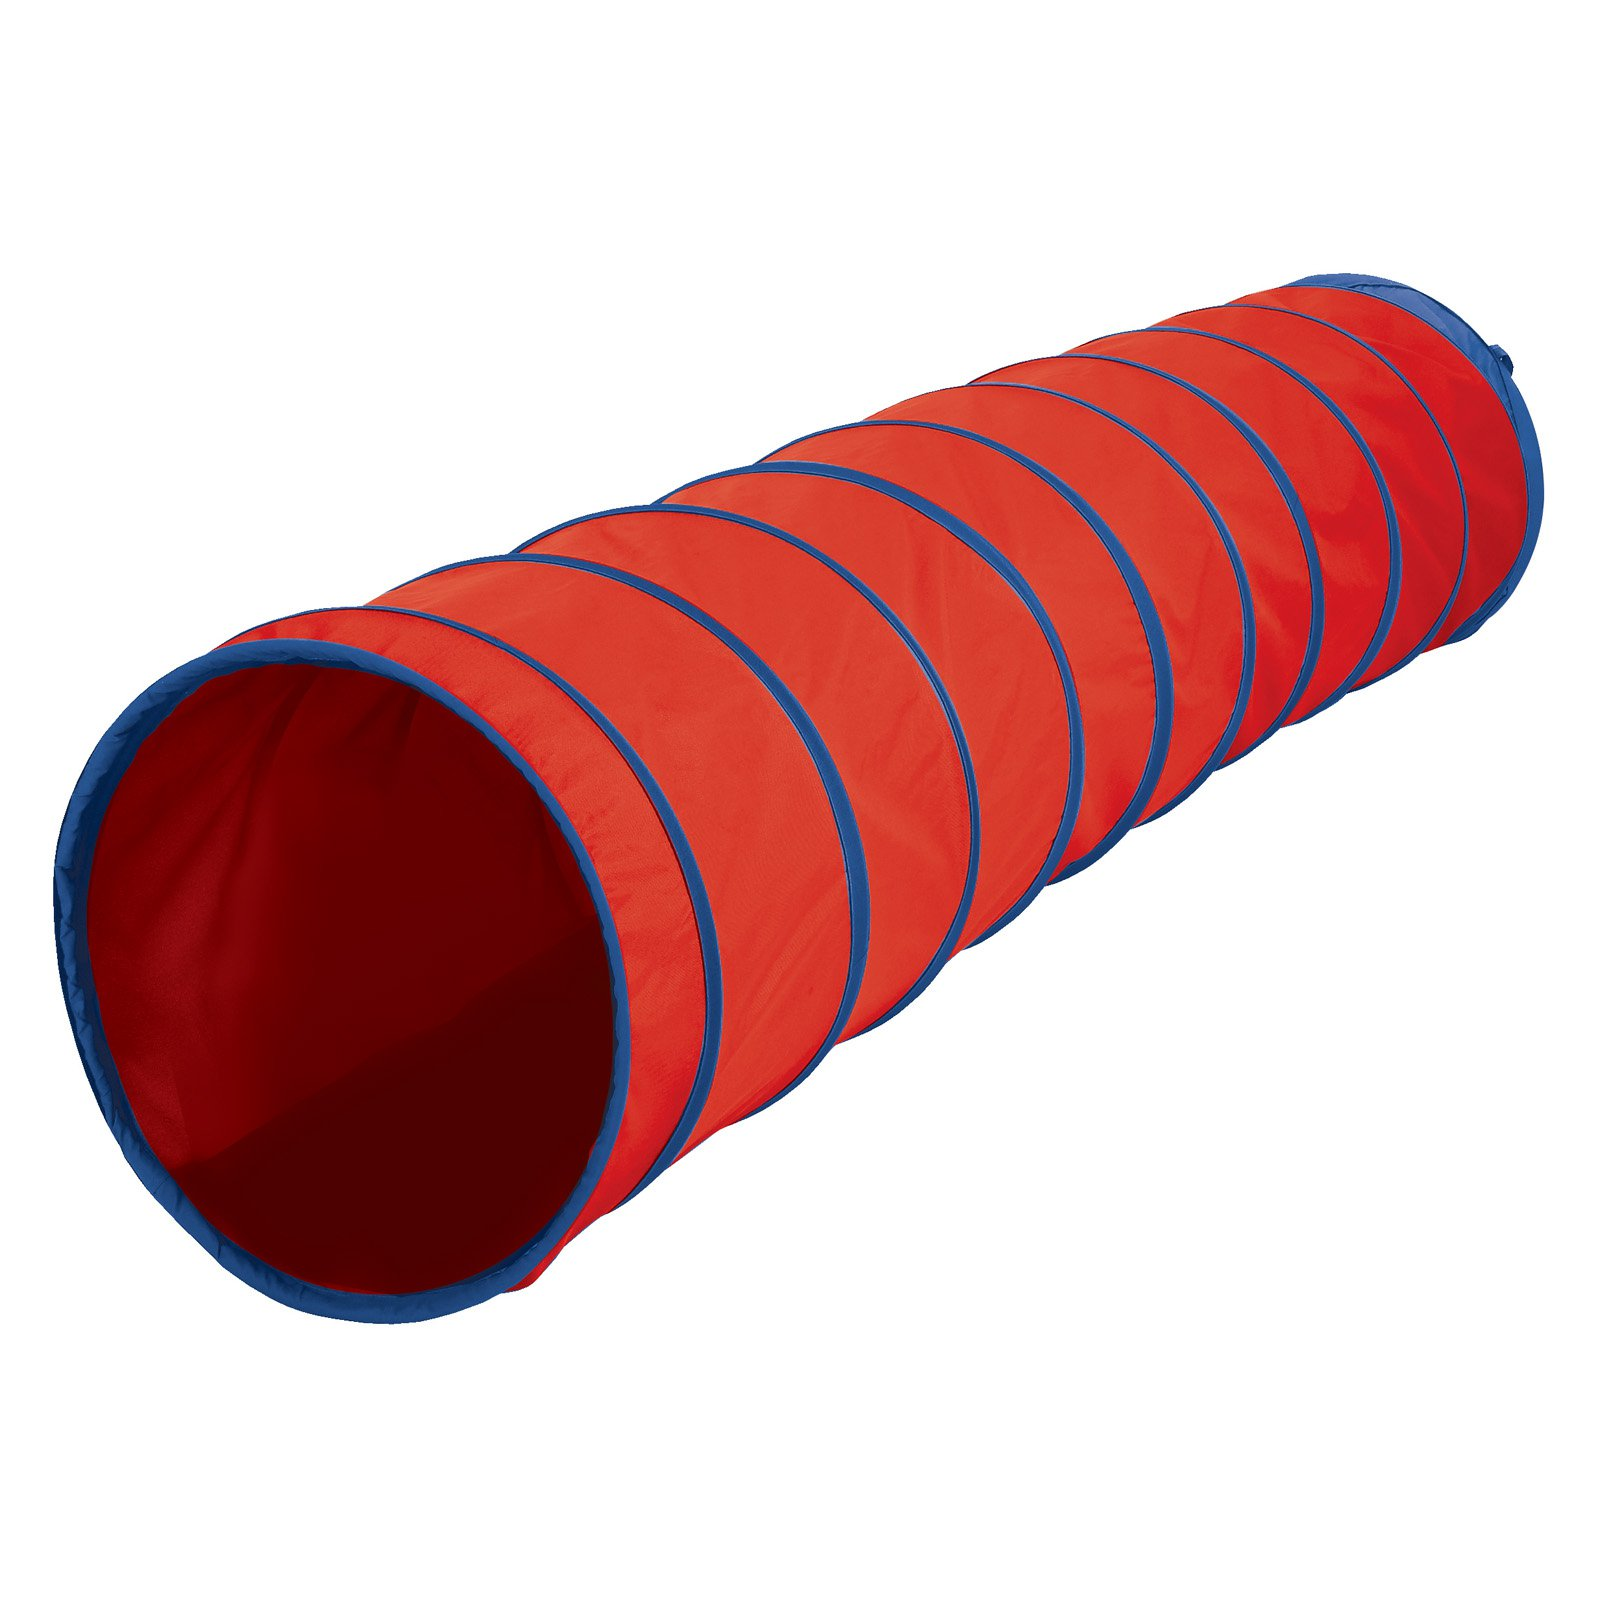 Institutional 6' Tunnel, Red